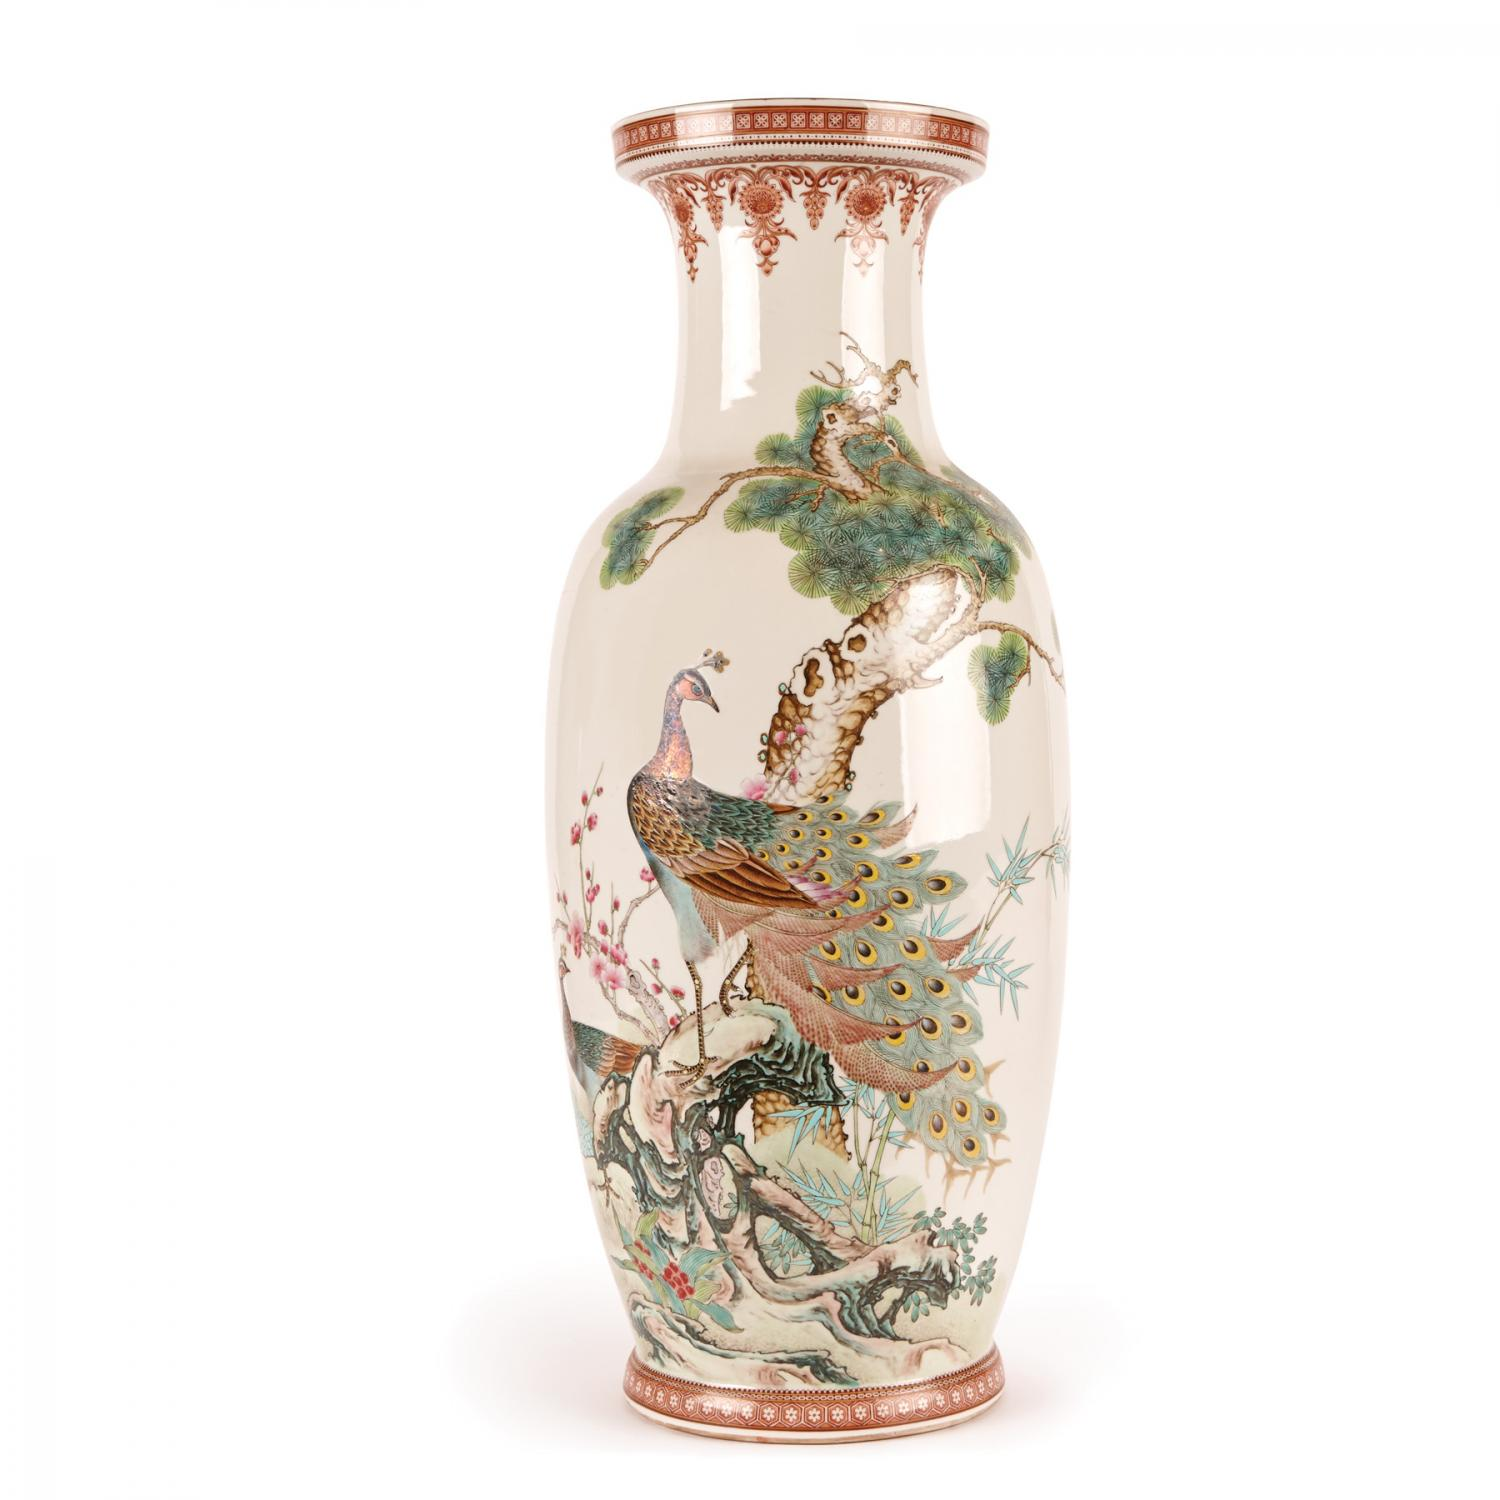 Lot 377 Of 270 A Large Chinese Famille Rose Vase